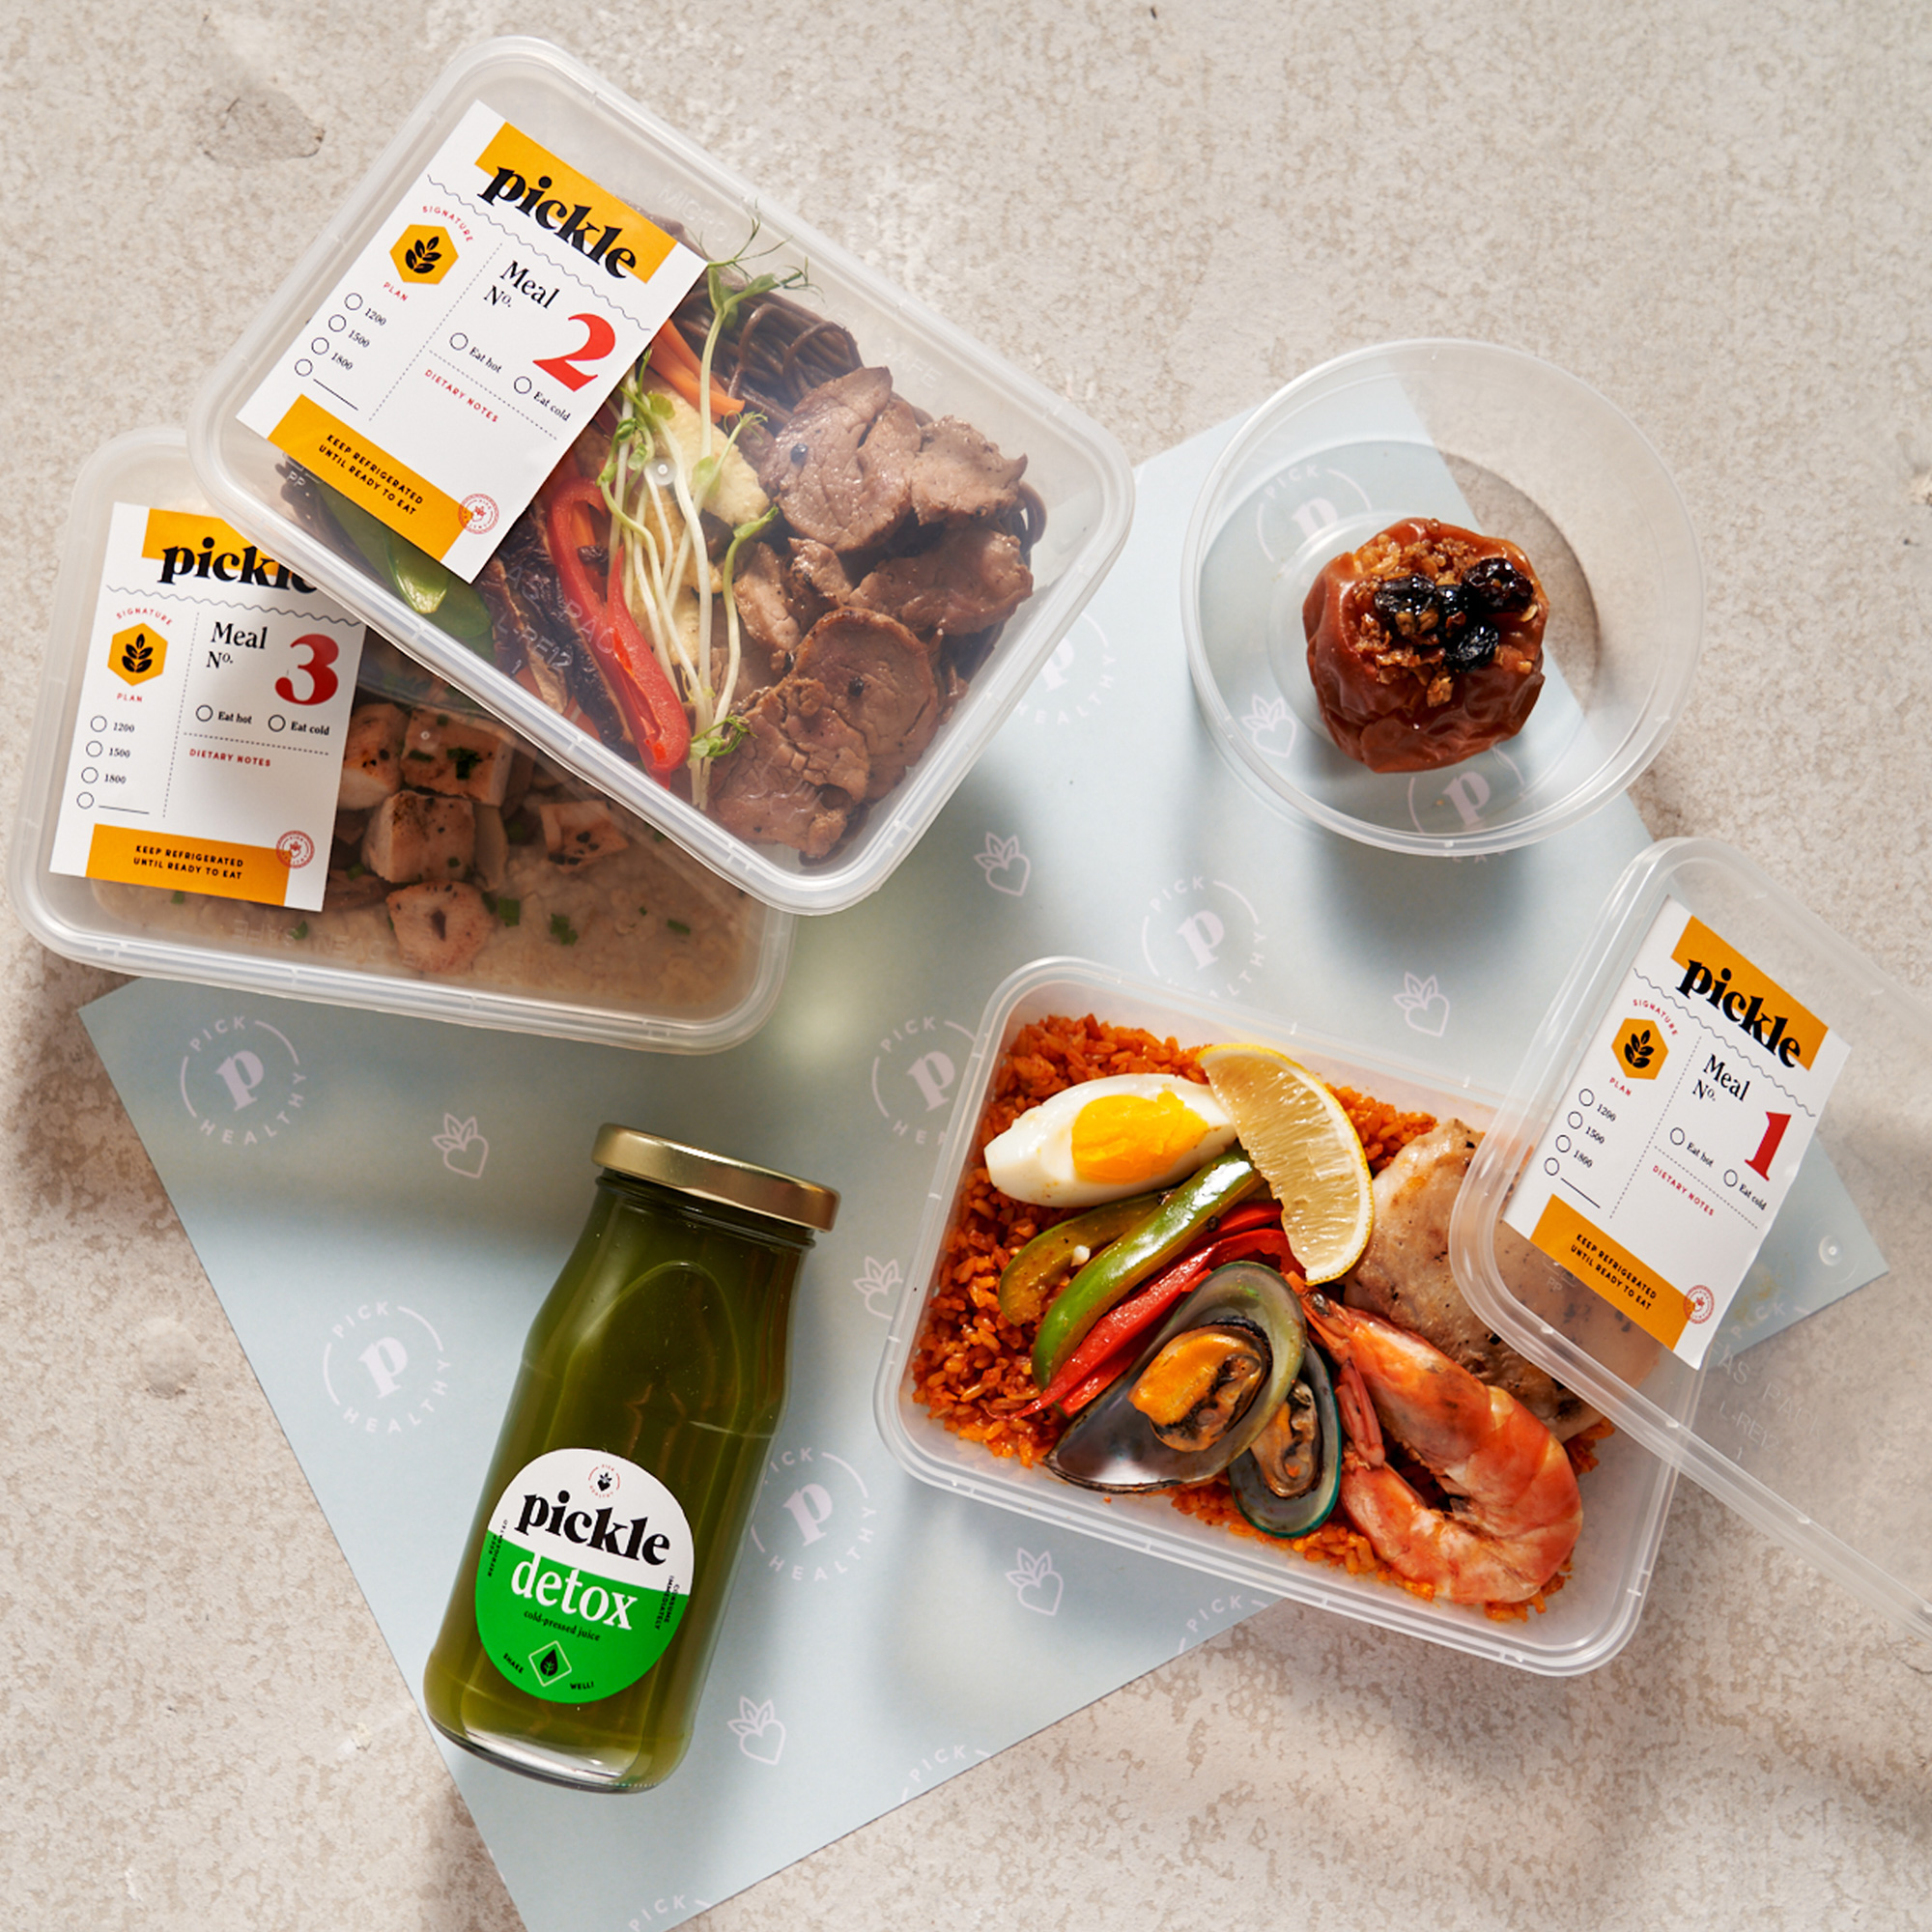 Sit back and relax - Just wait for your scheduled daily delivery and enjoy your meals!